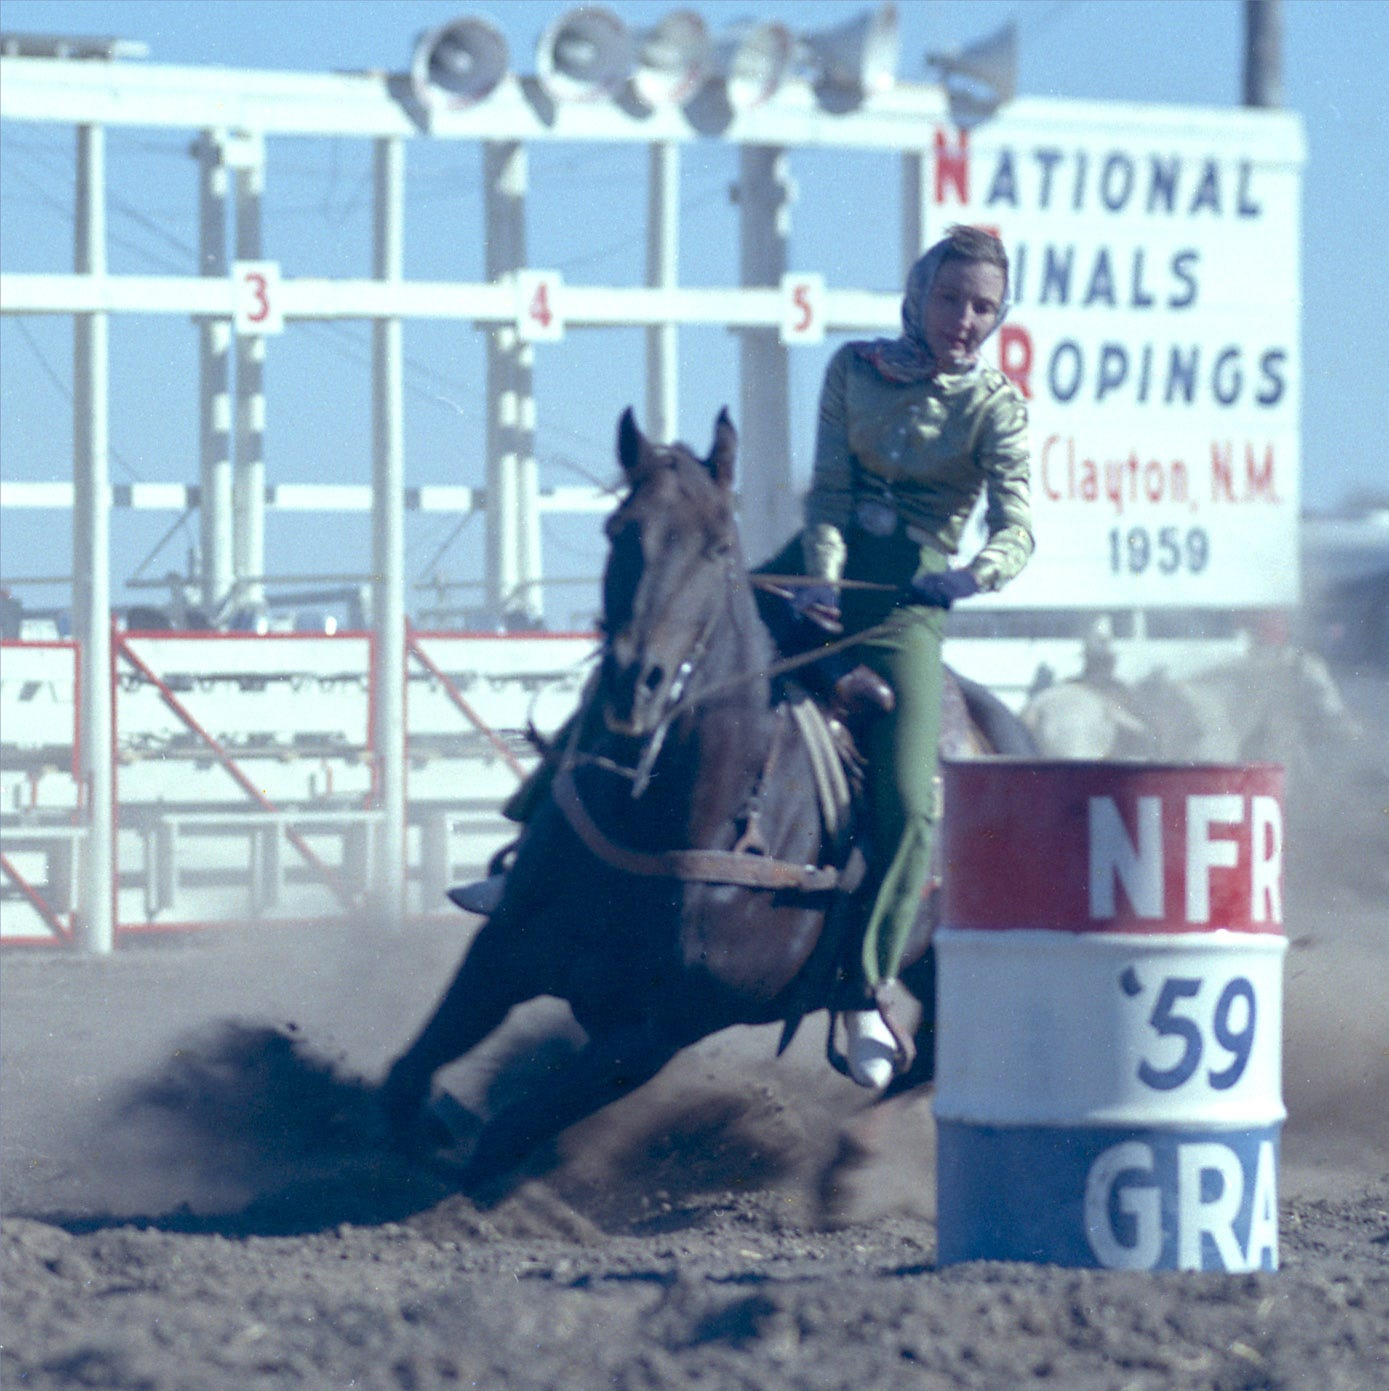 San Angelo rodeo legend inducted into pro hall of fame